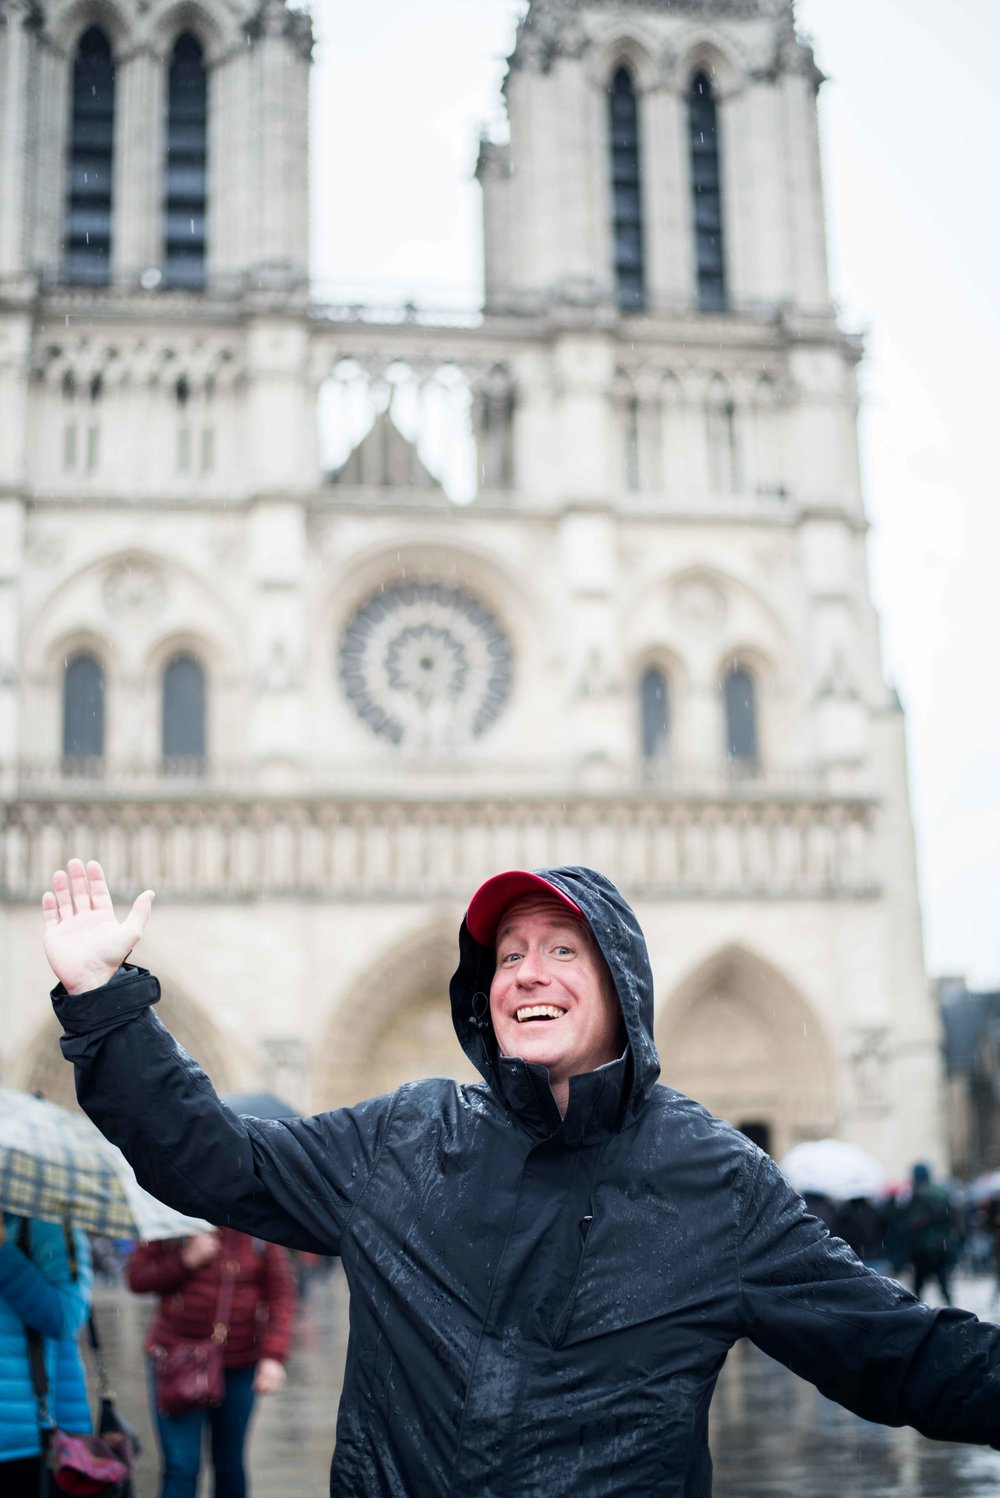 My dad obviously loved his Paris experience with me at the helm!